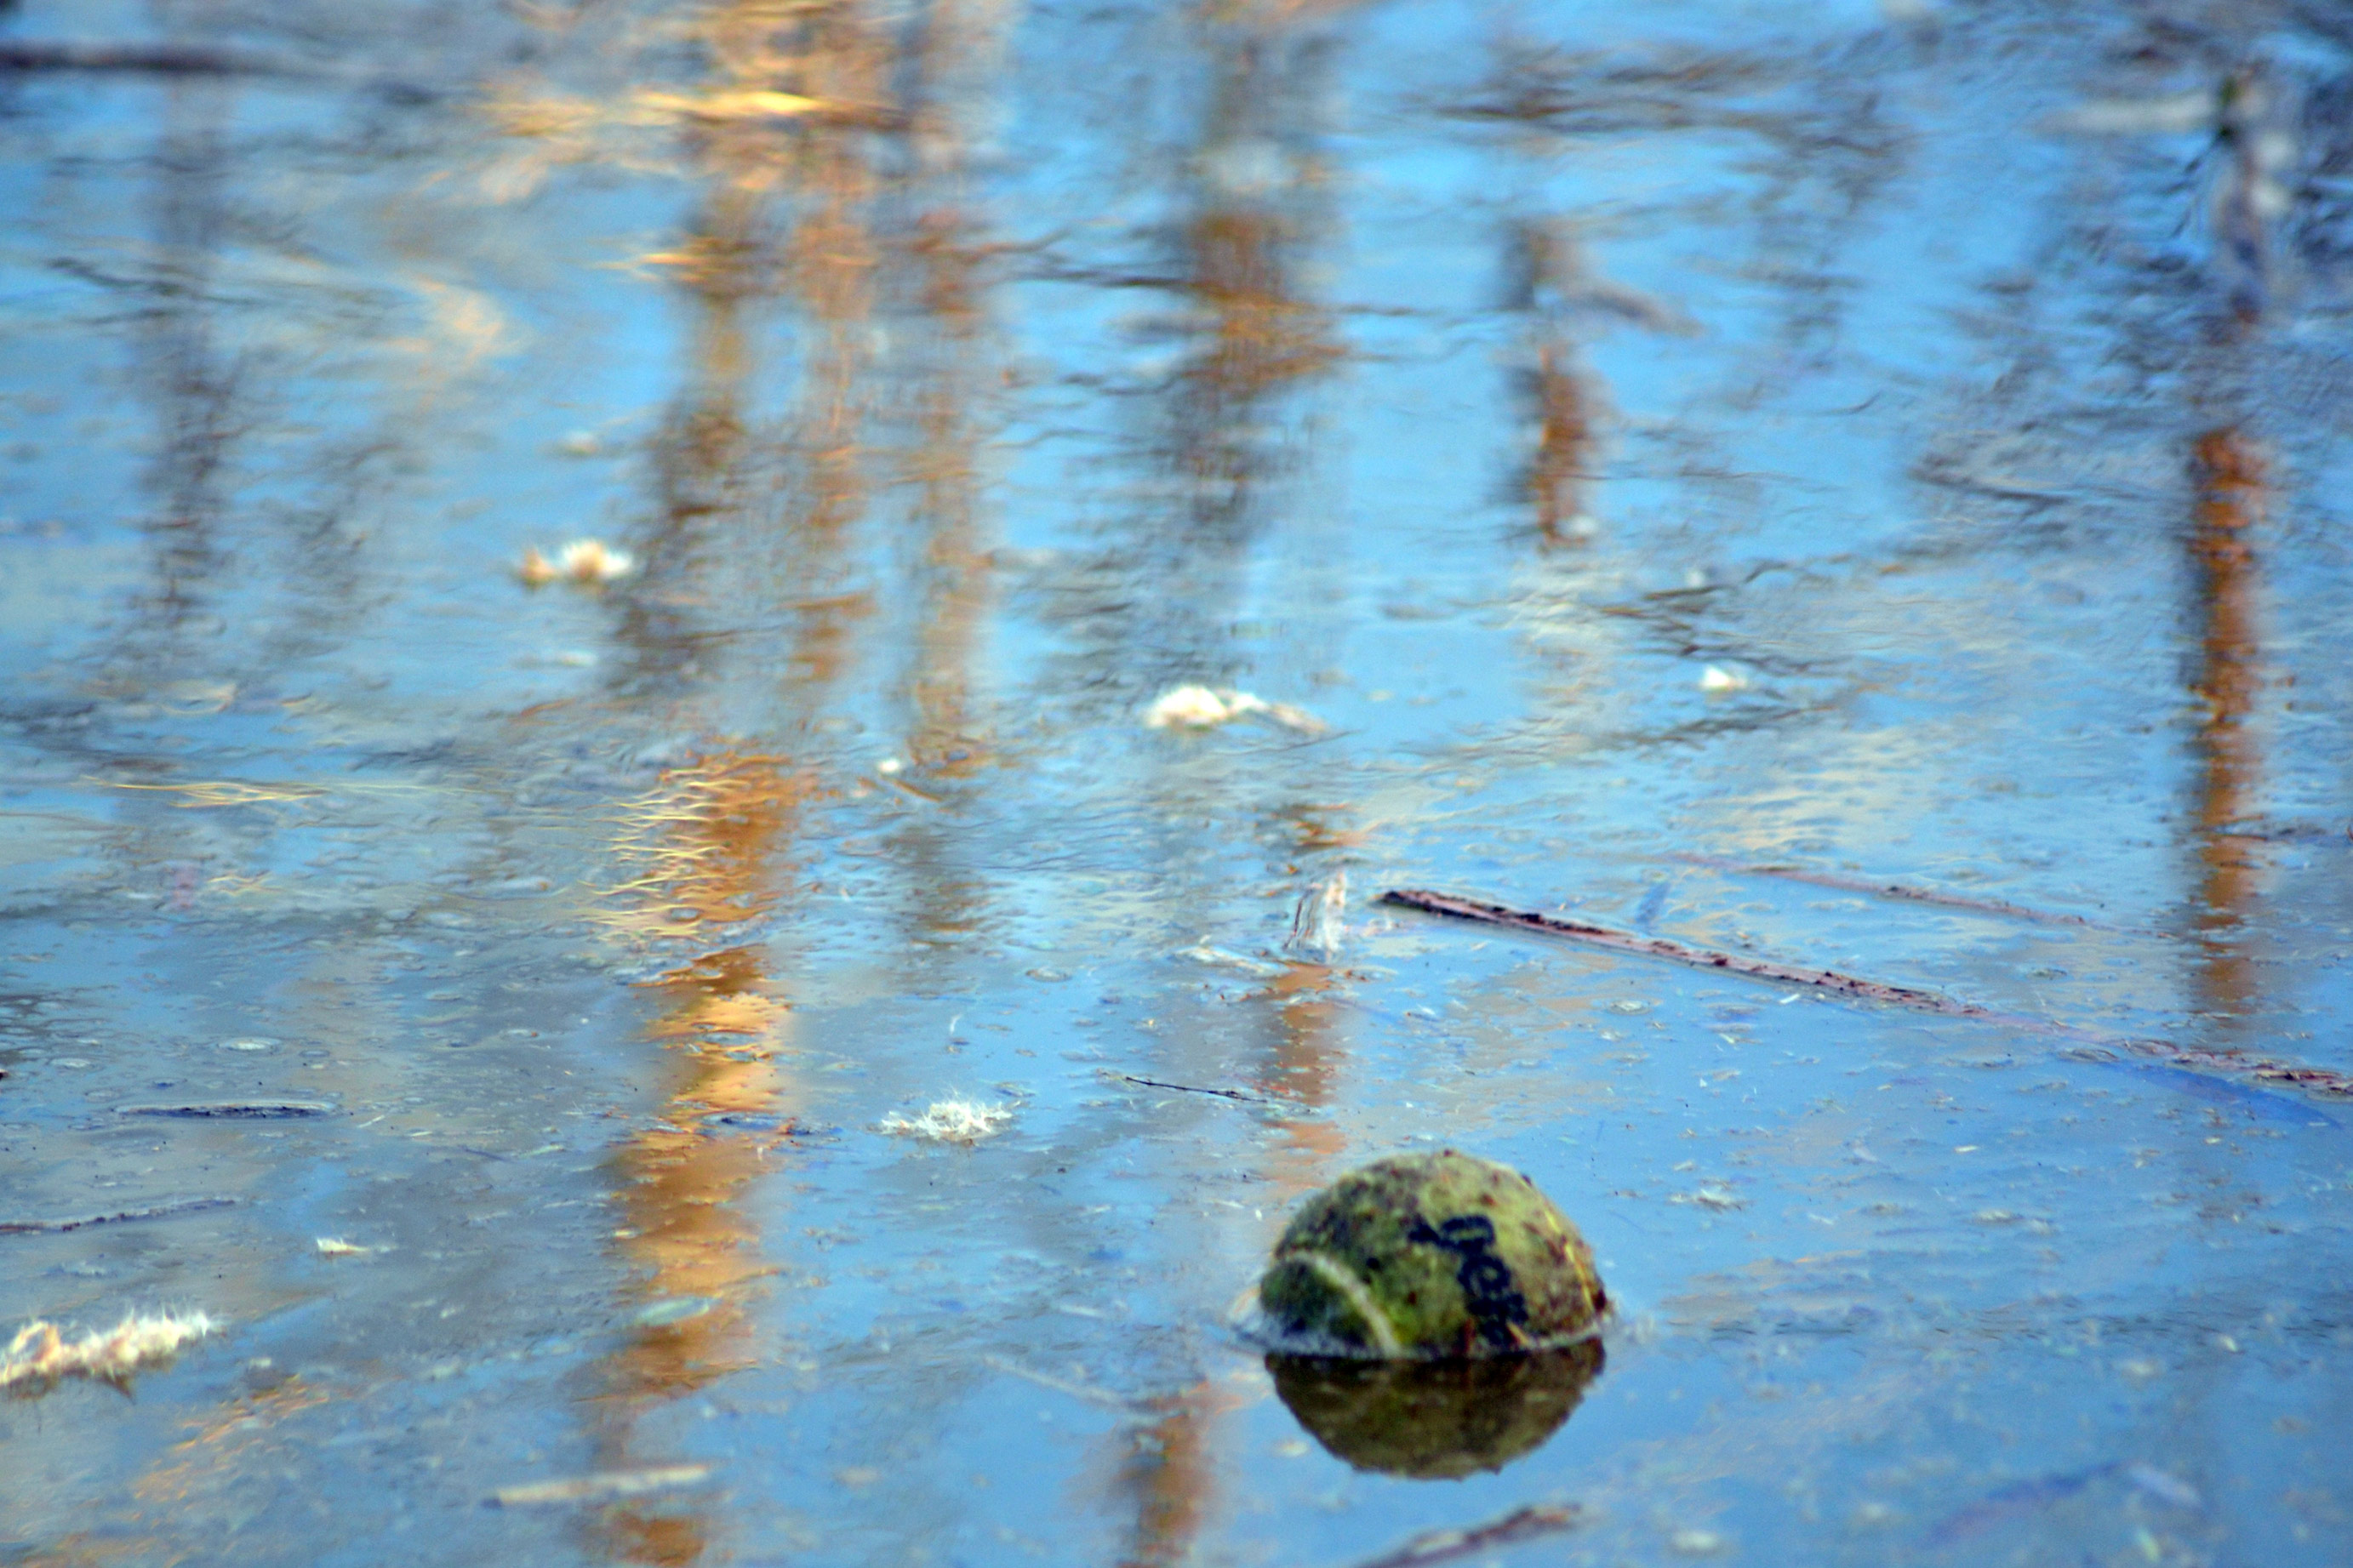 Tennis ball on pond surface to stop freezing